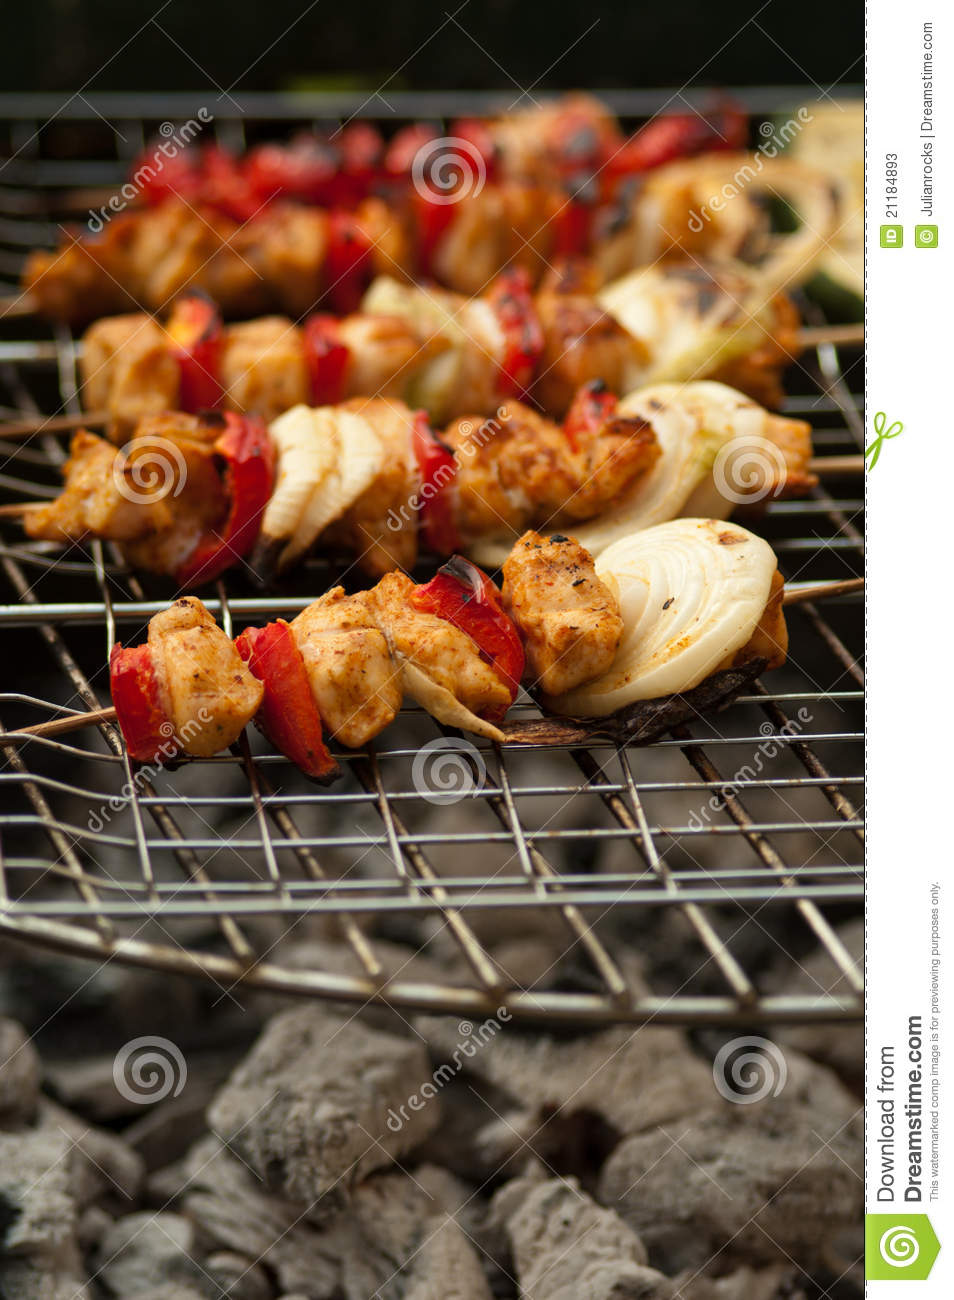 Grilled chicken on a stick with onion and pepper